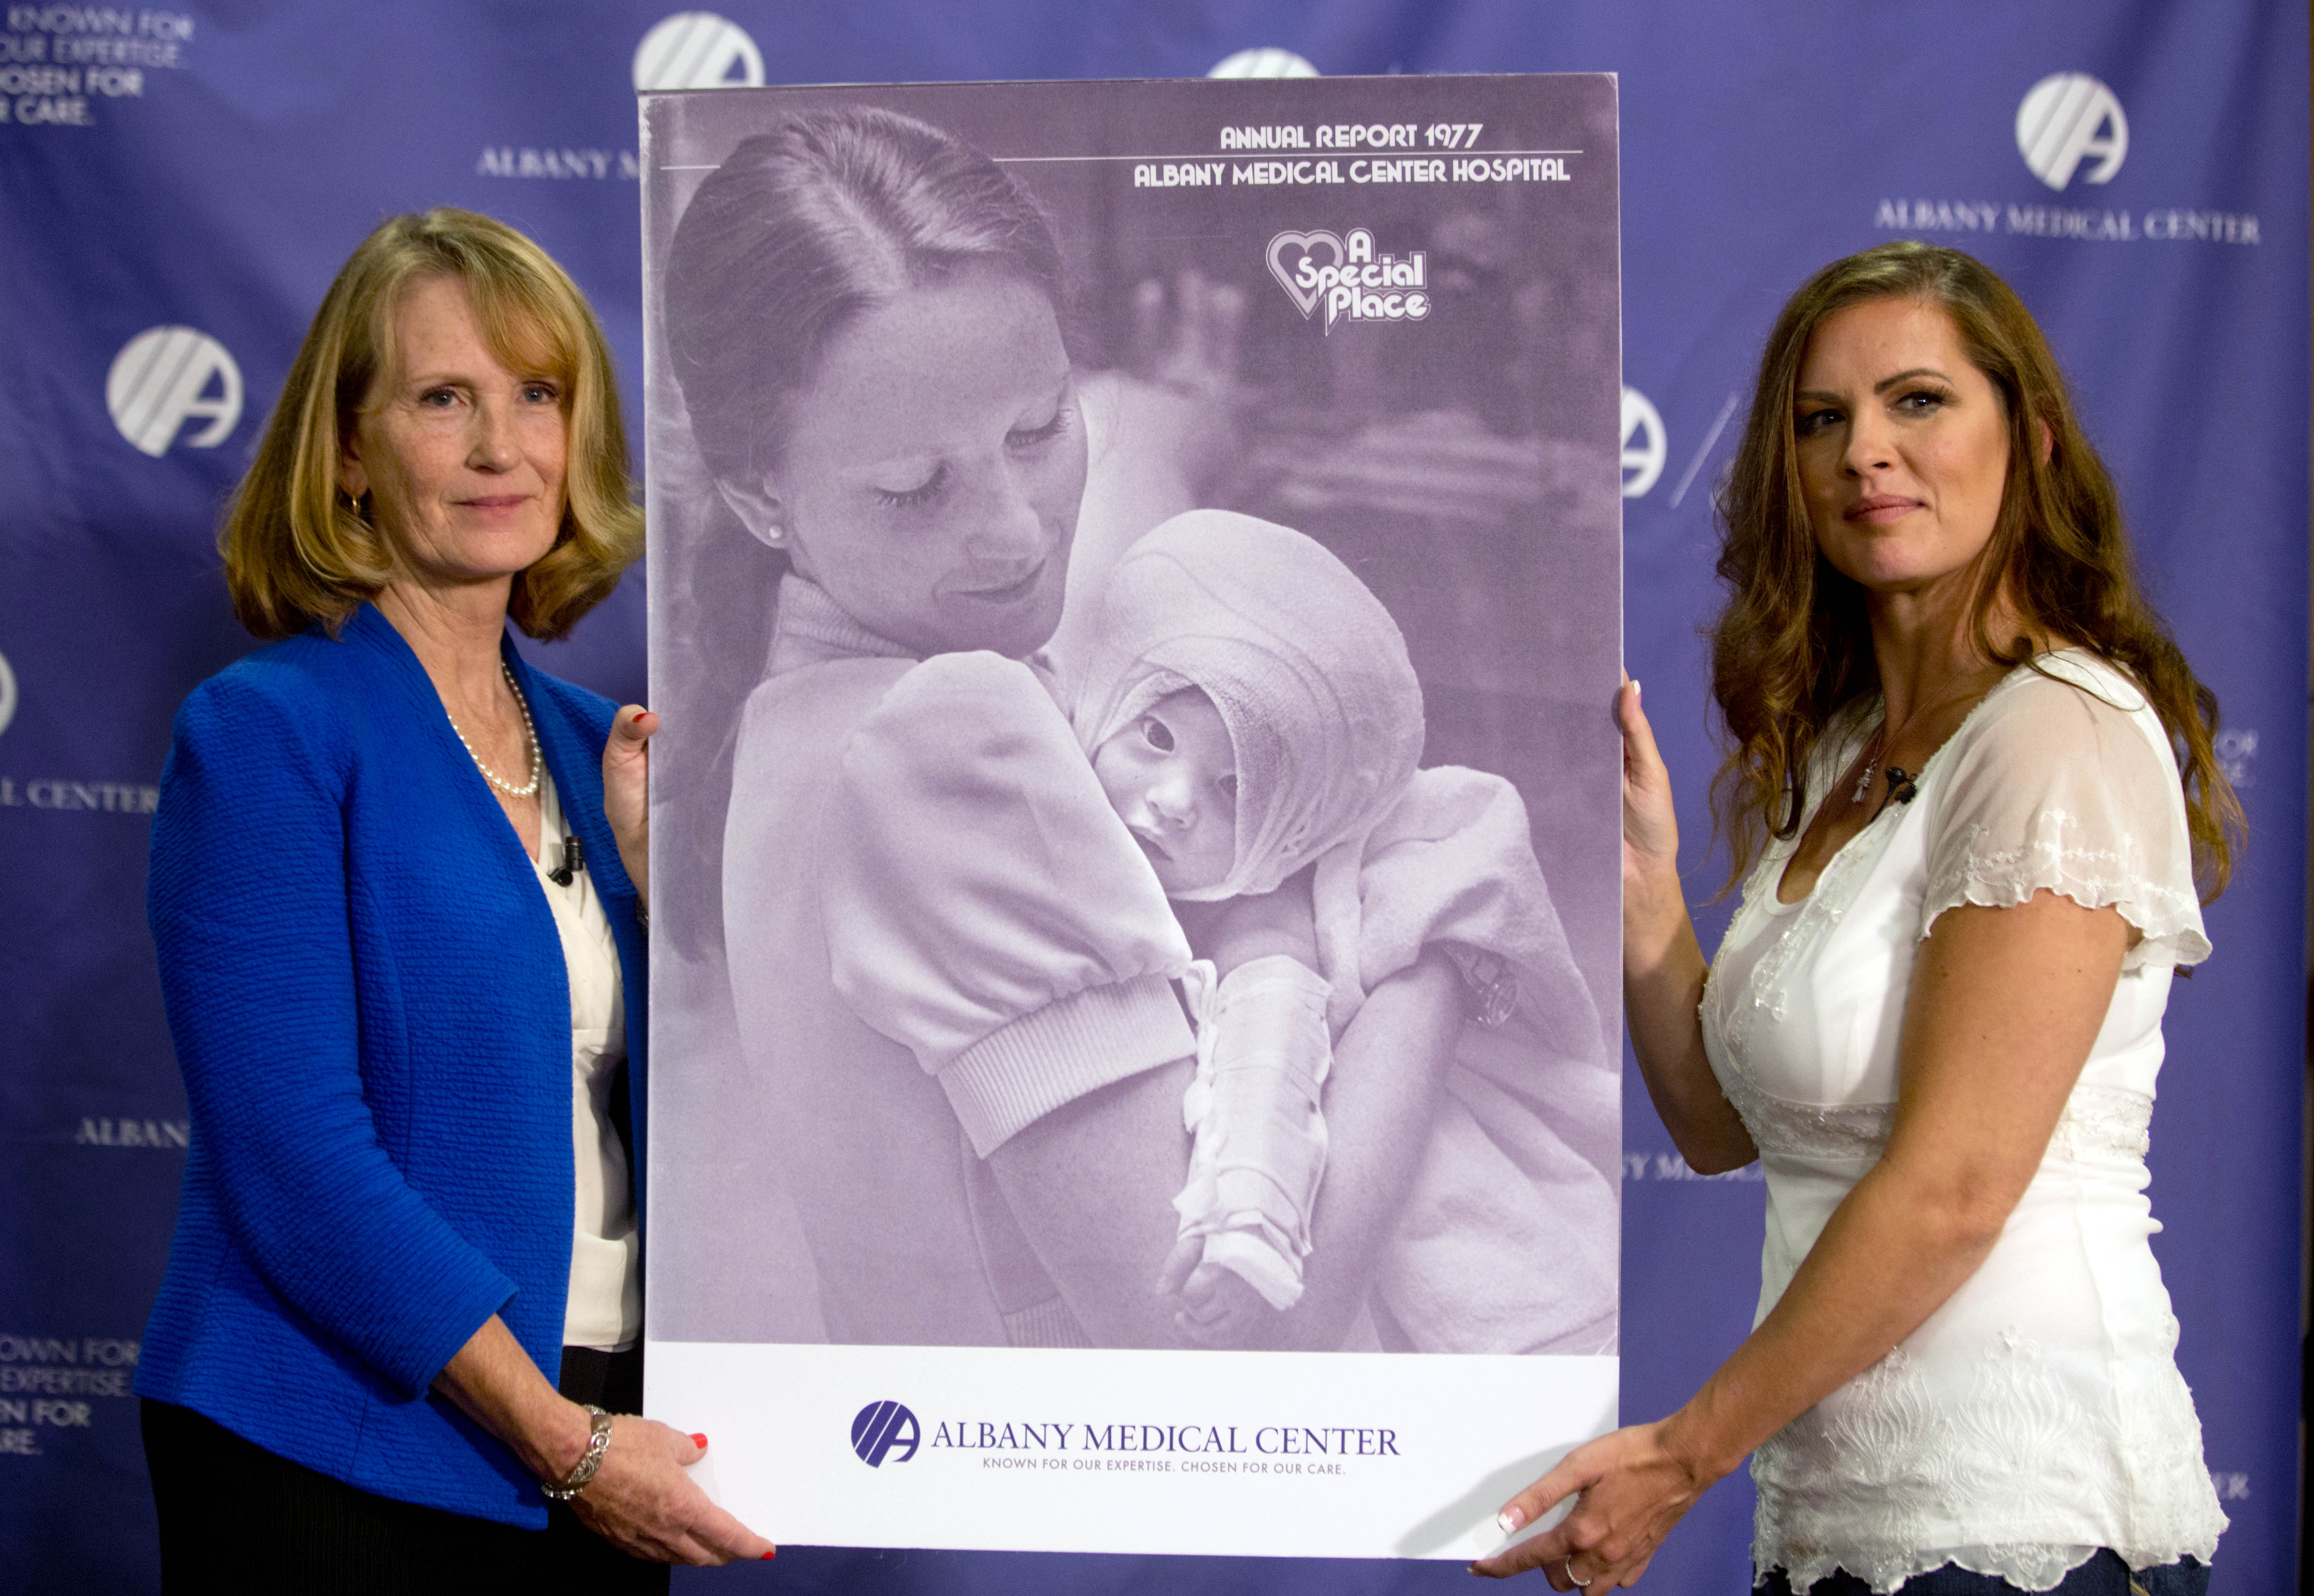 Nurse Susan Berger (L) and Amanda Scarpinati pose with a copy of a 1977 Albany Medical Center annual report during a news conference at Albany Medical Center in Albany, N.Y. on Sept. 29, 2015.